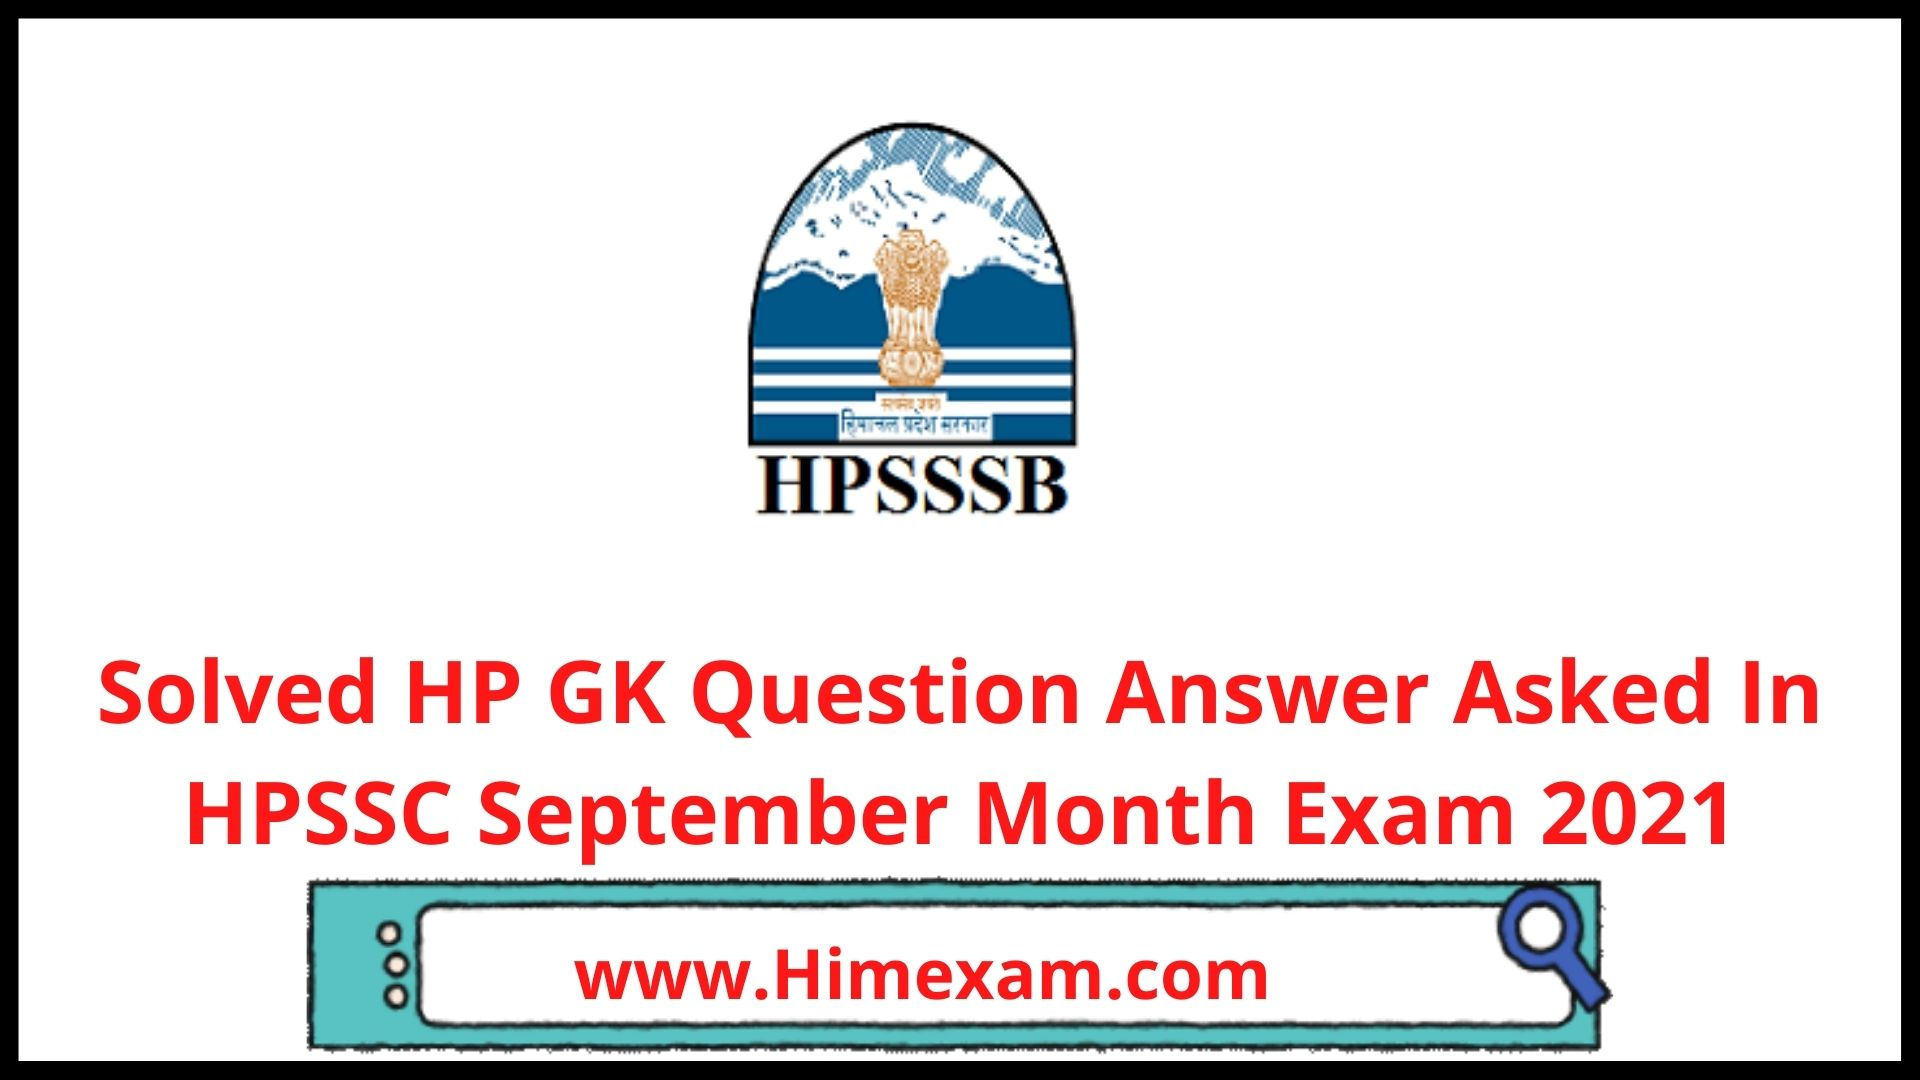 Solved HP GK Question Answer  Asked In HPSSC September Month Exam 2021